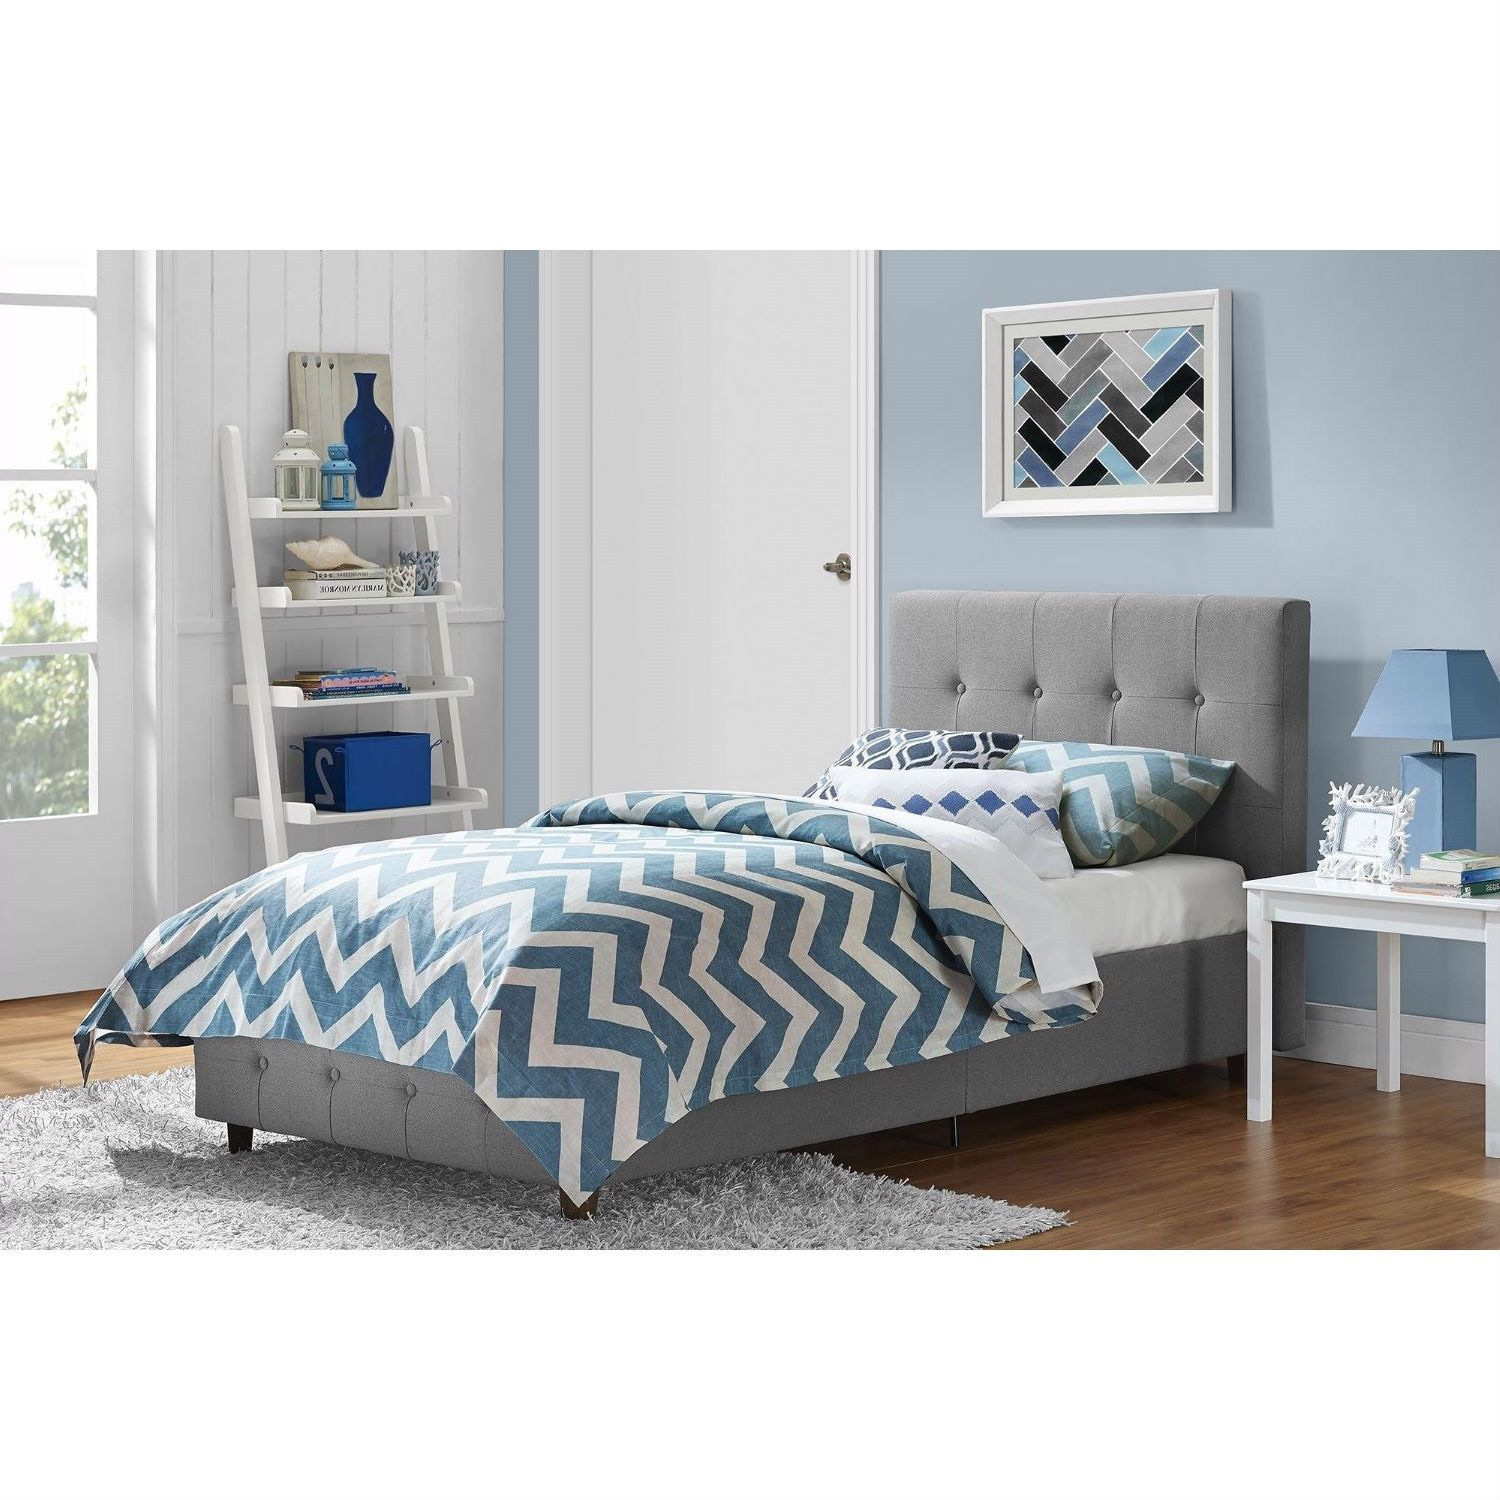 Size Grey Upholstered Platform Bed Frame with Button-Tufted Headboard